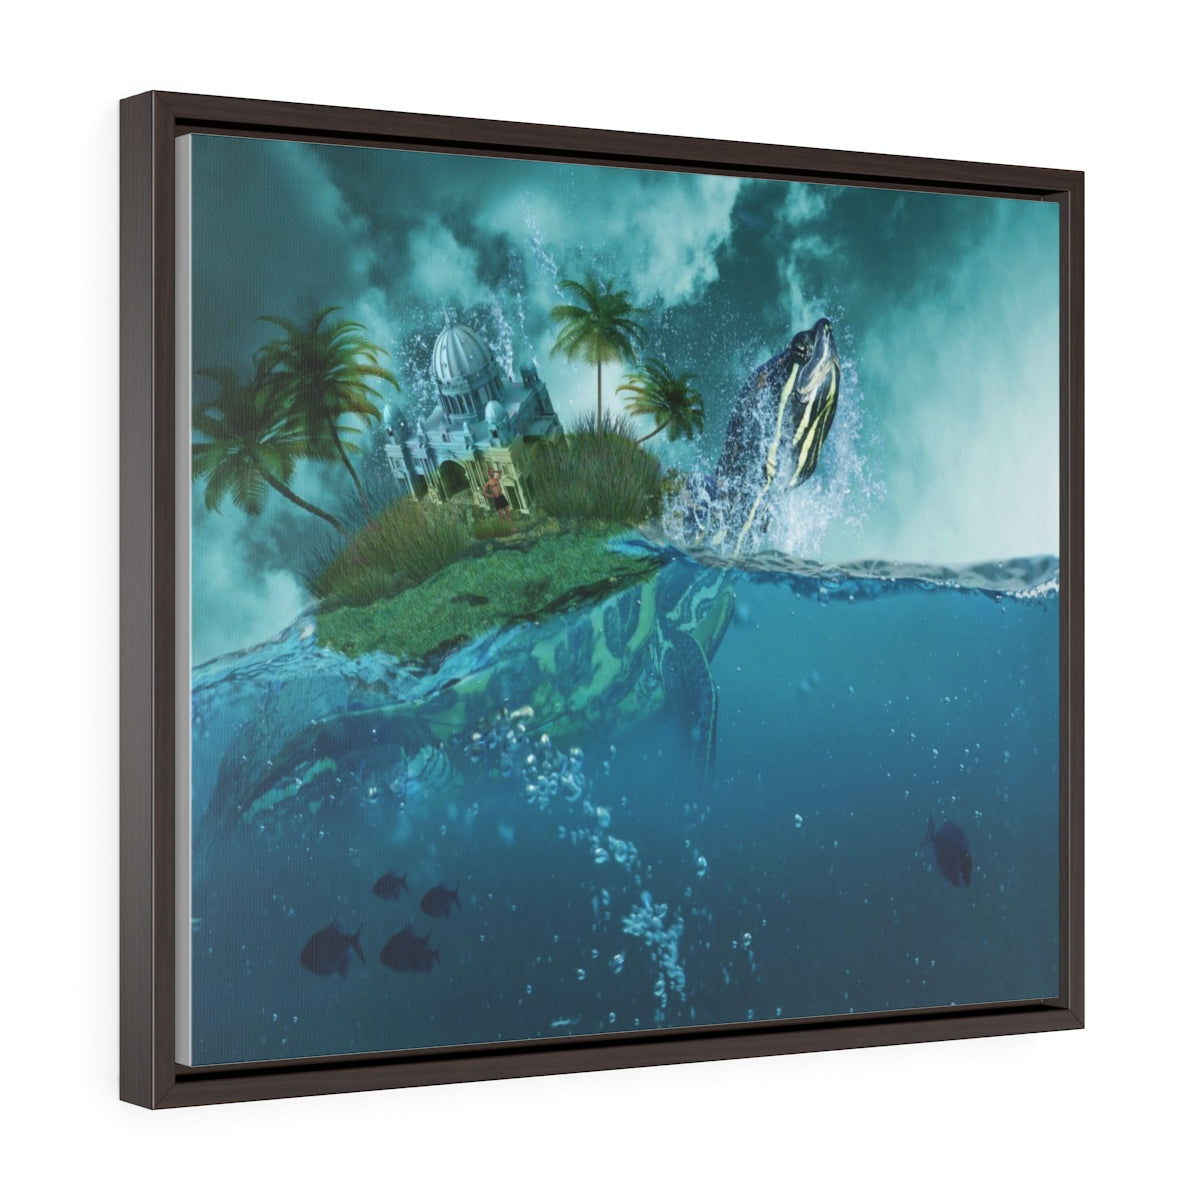 The turtle - Horizontal Framed Premium Gallery Wrap Canvas